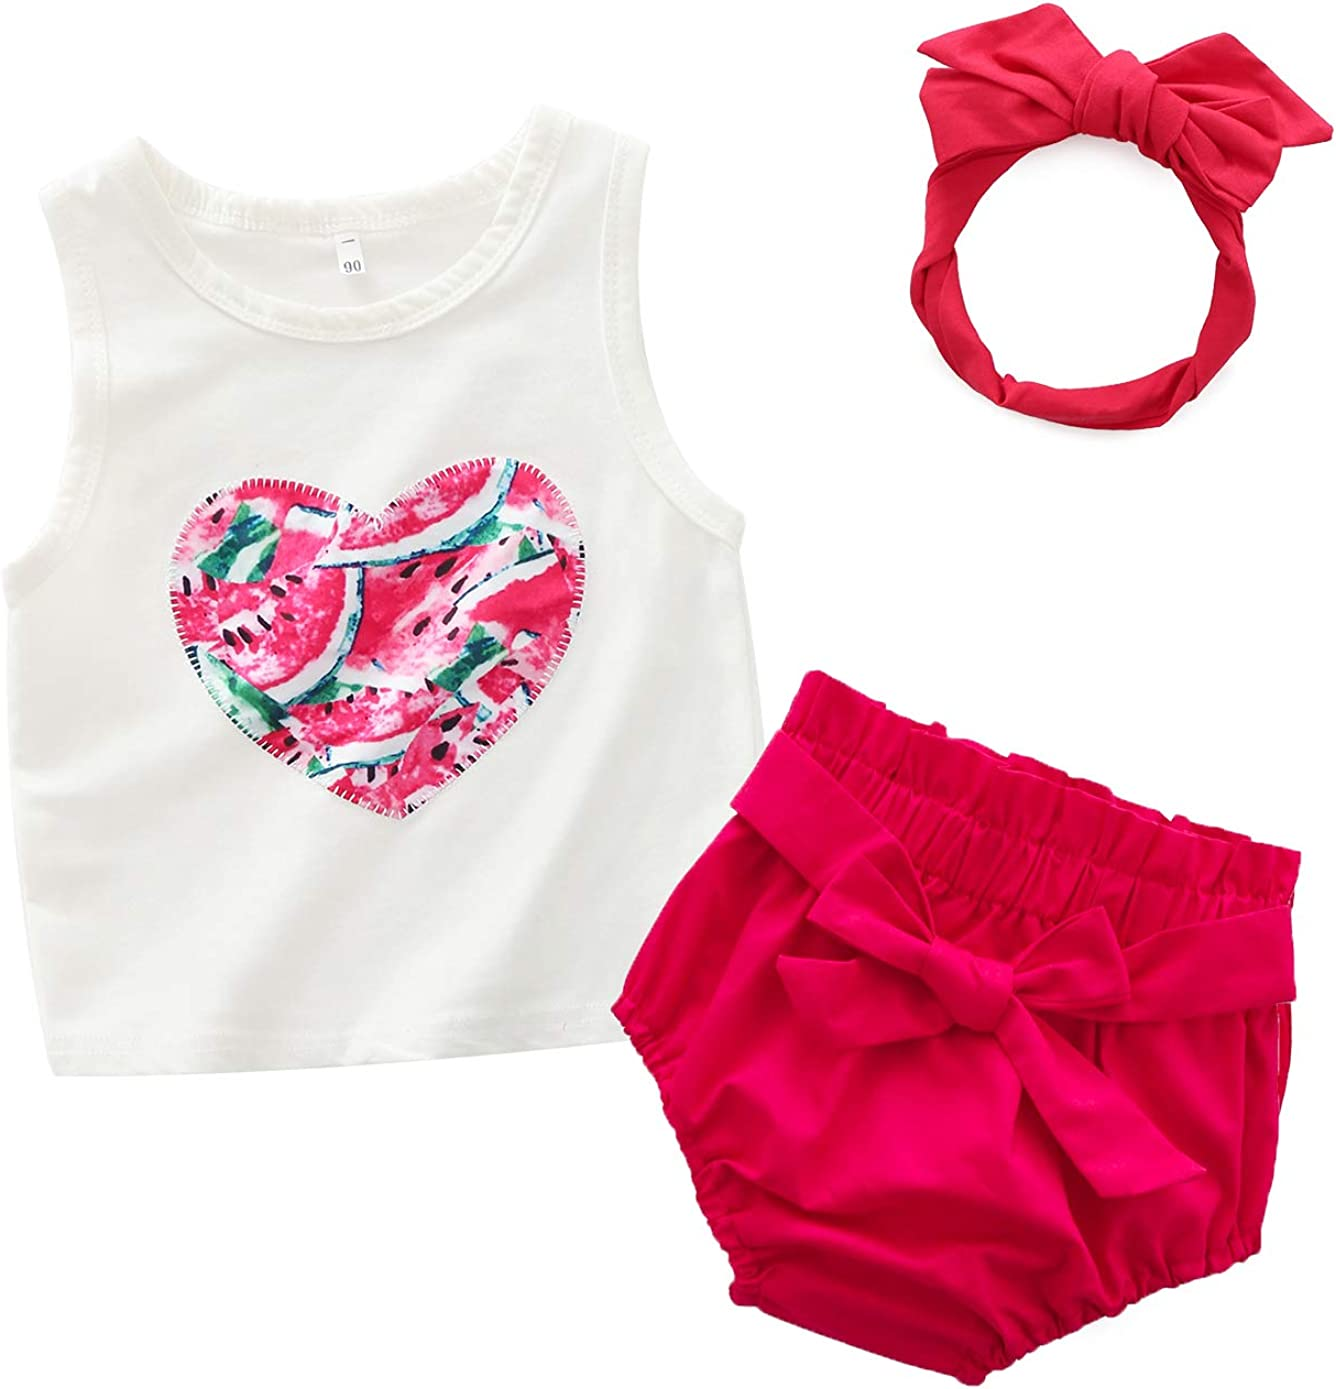 Newborn Baby Girls Red Heart Vest Tank Top Elastic Ruffle Bubble PP Blommer Shorts with Bowknot Headband Outfit Set